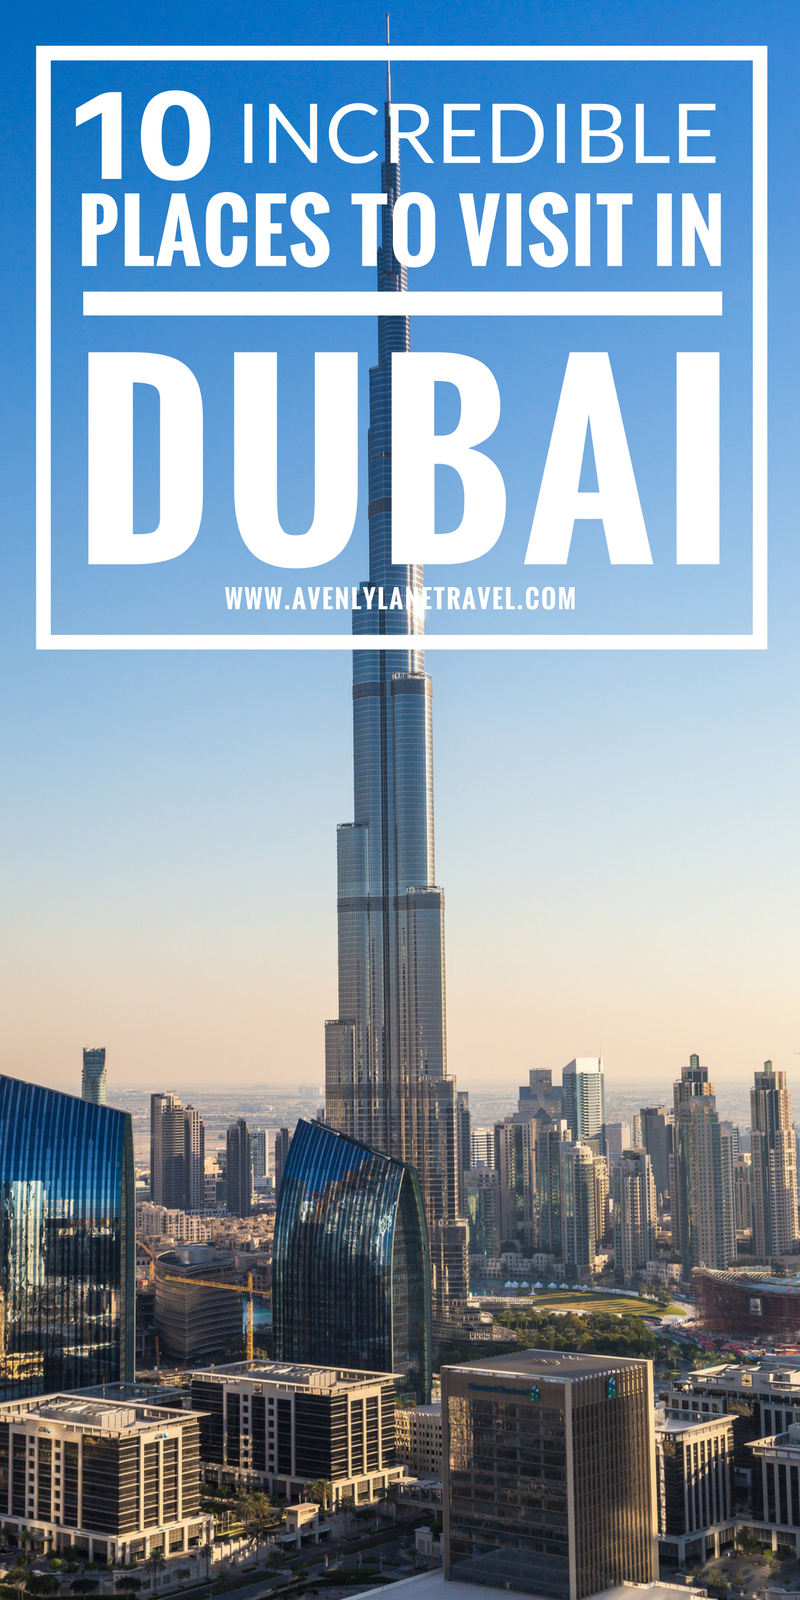 Top 10 Things To Do In Dubai Awesome Travel Spots Dubai Travel Travel Travel Destinations